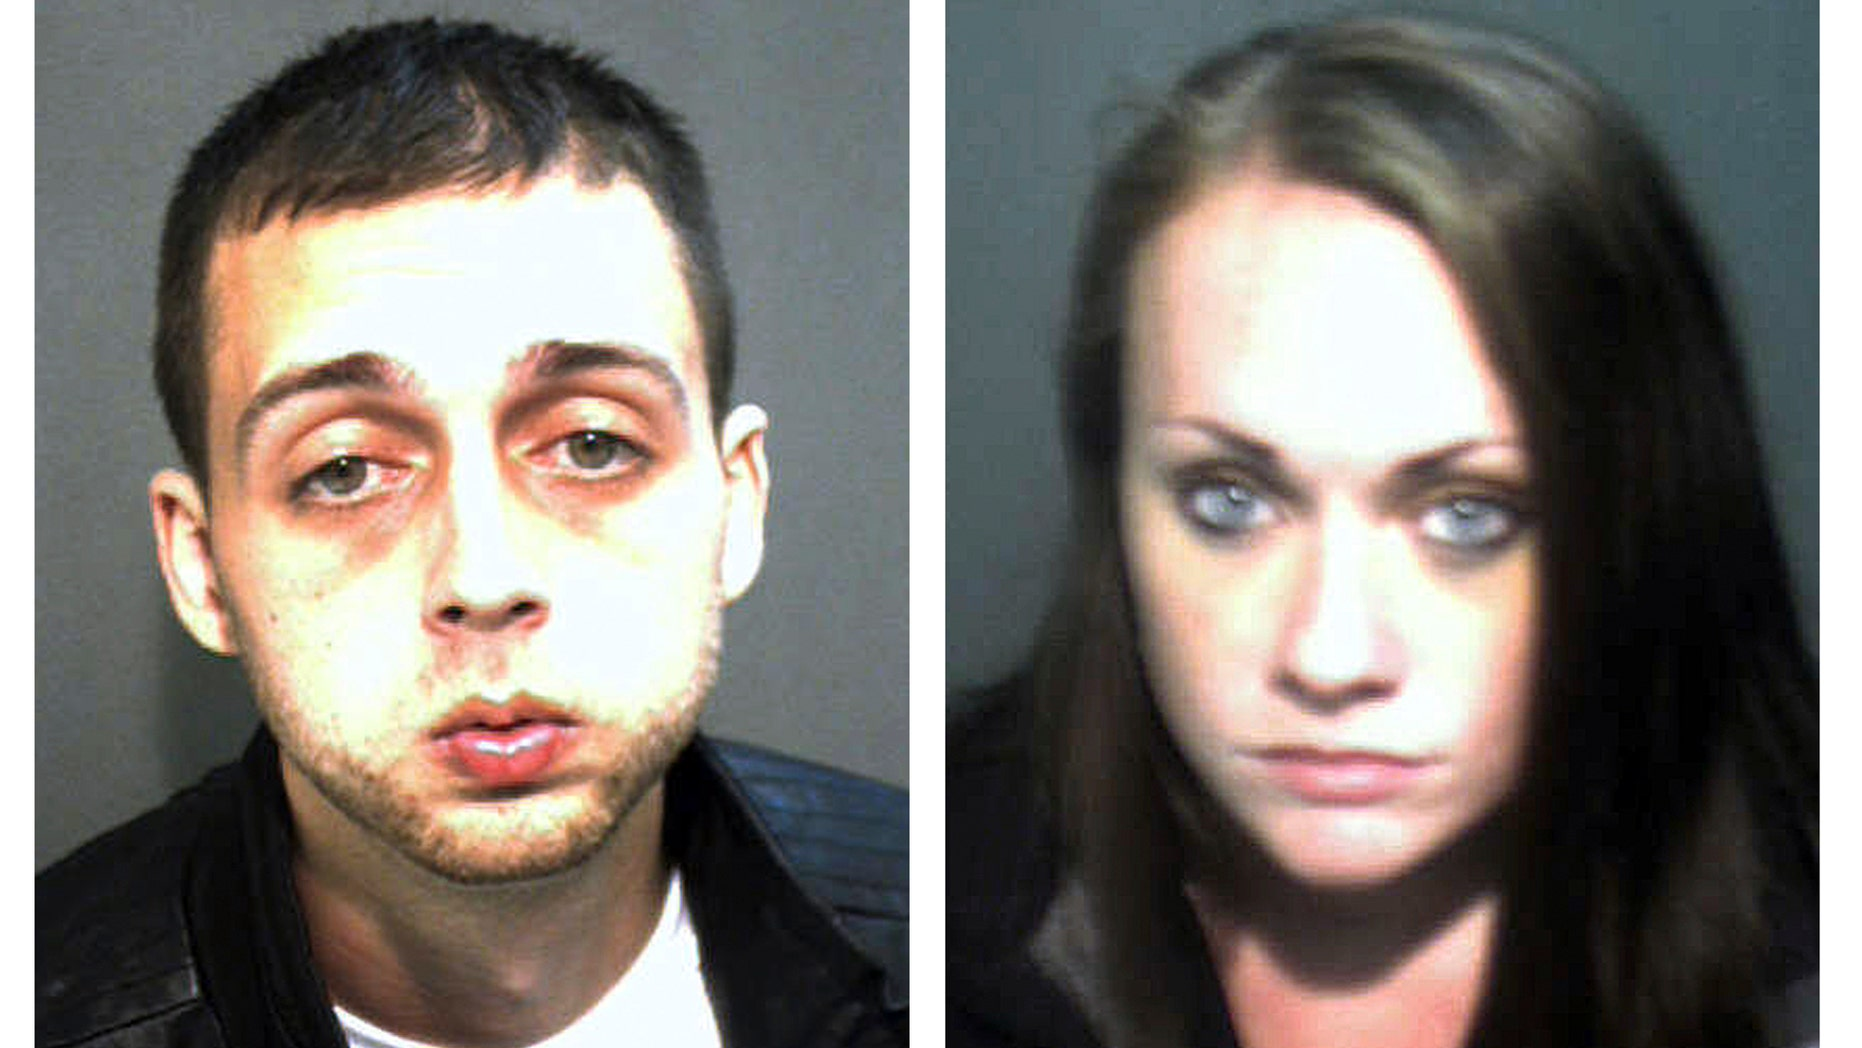 Nov. 28, 2012: These booking photos released by the Orange County Corrections Department show Roland Dow, left, and Jessica Linscott, of Plaistow, N.H., who were arrested Wednesday evening at Universal Studios in Orlando, Fla.